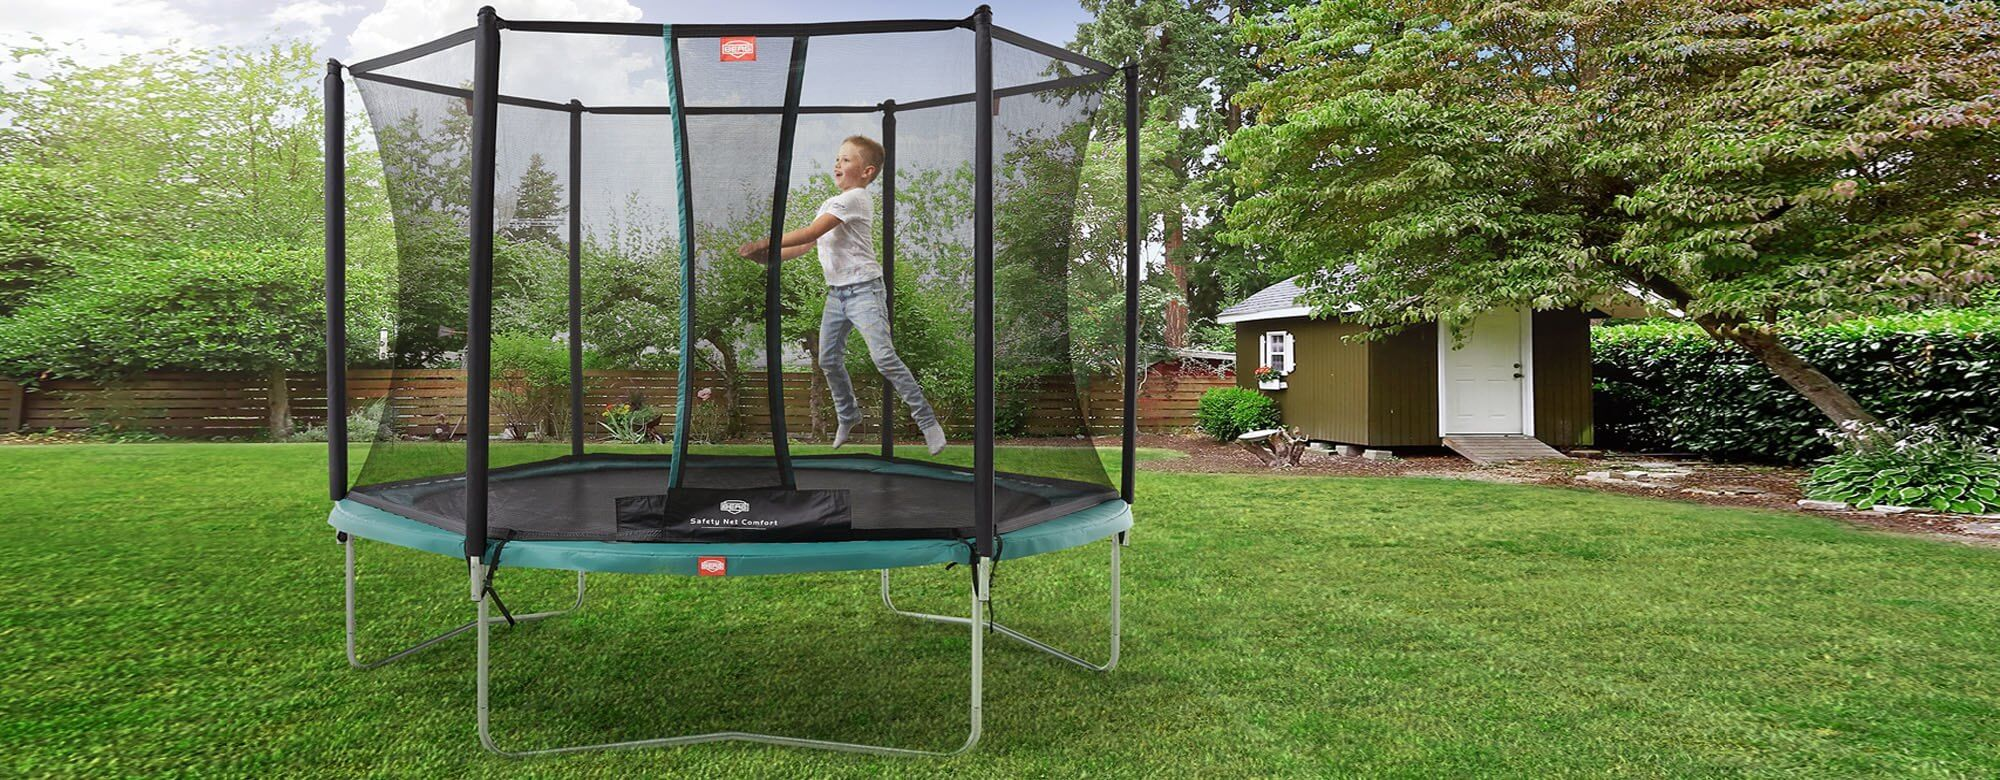 berg trampolin talent original berg trampolin so g nstig. Black Bedroom Furniture Sets. Home Design Ideas